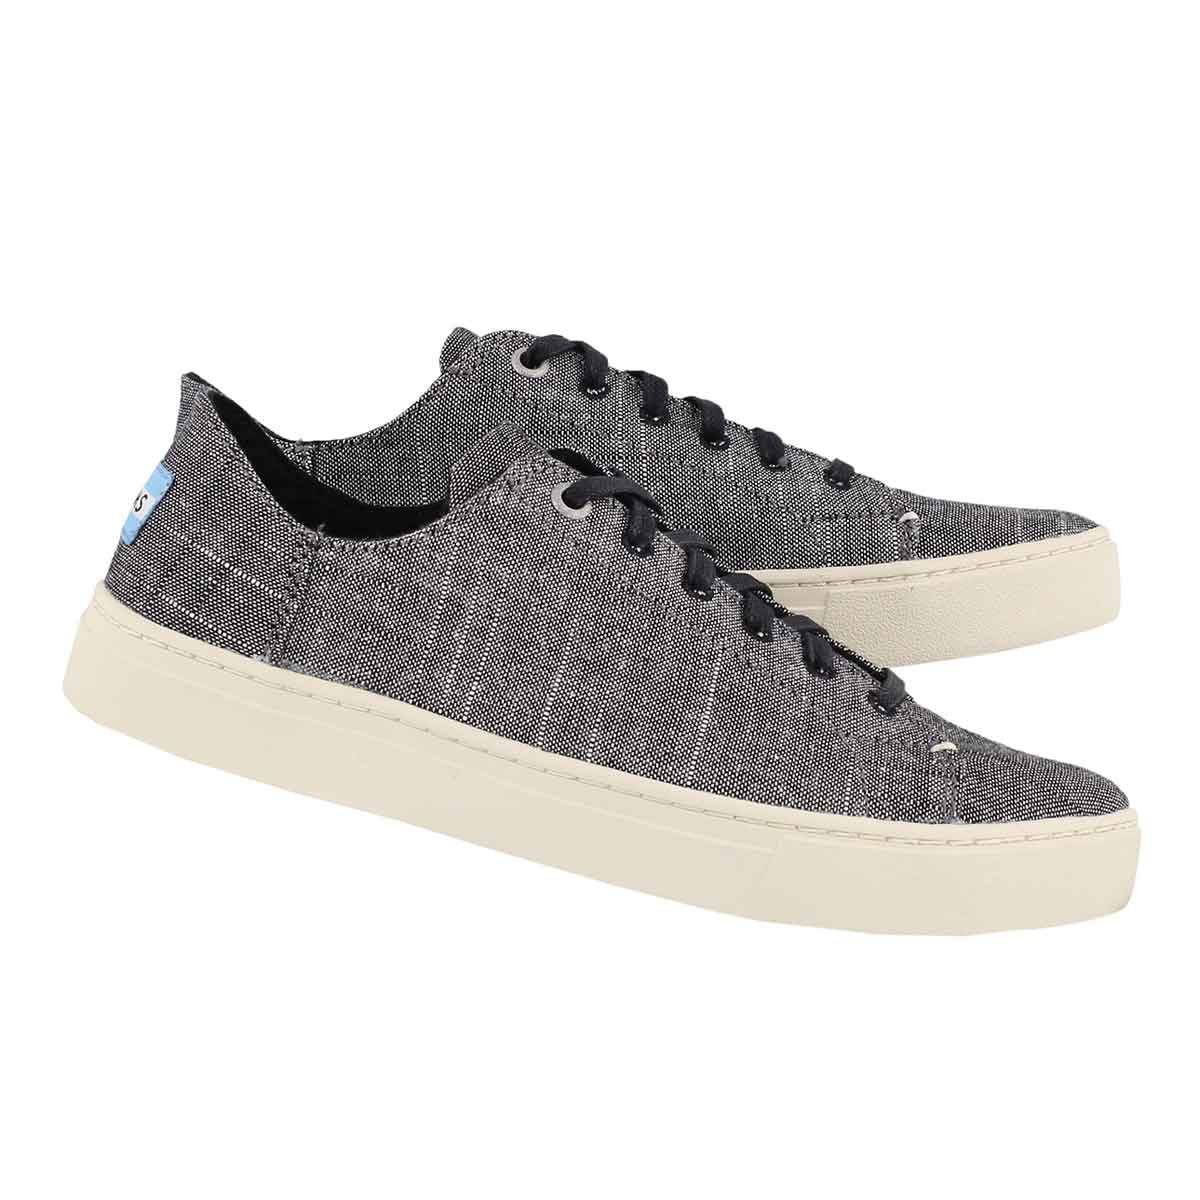 Lds Lenox black lace up casual sneaker